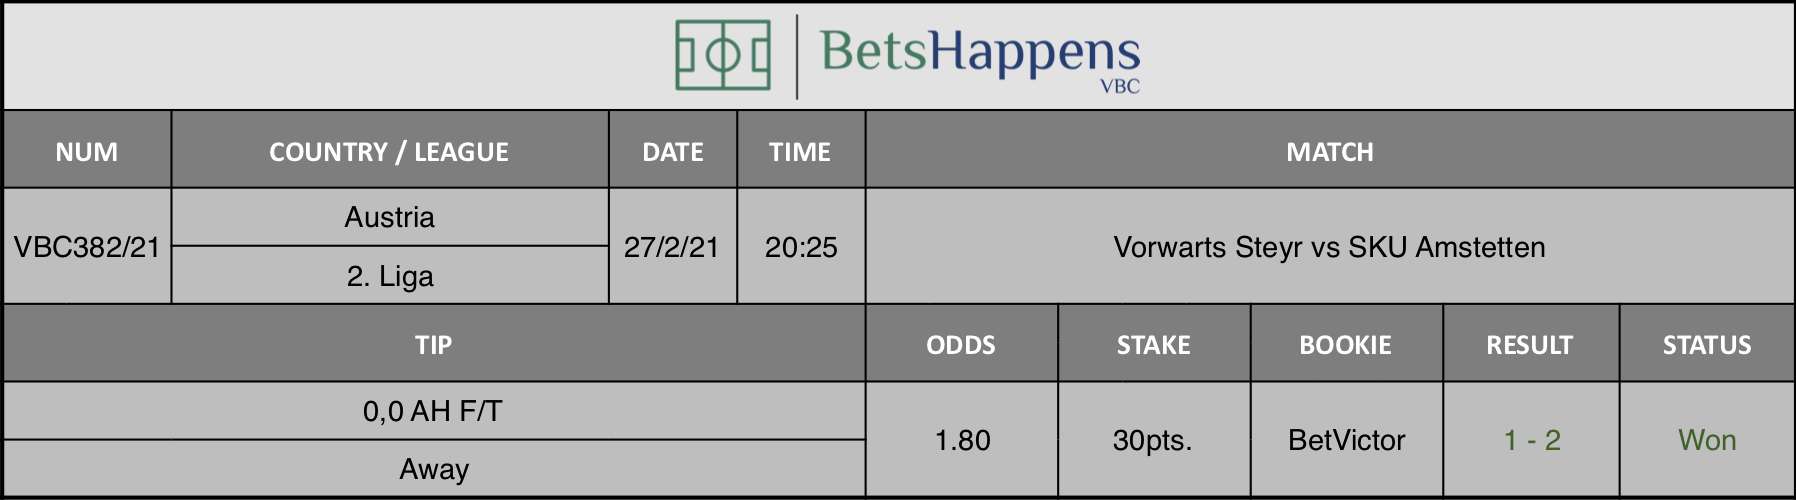 Results of our tip for the Vorwarts Steyr vs SKU Amstetten match where 0,0 AH F/T Away is recommended.